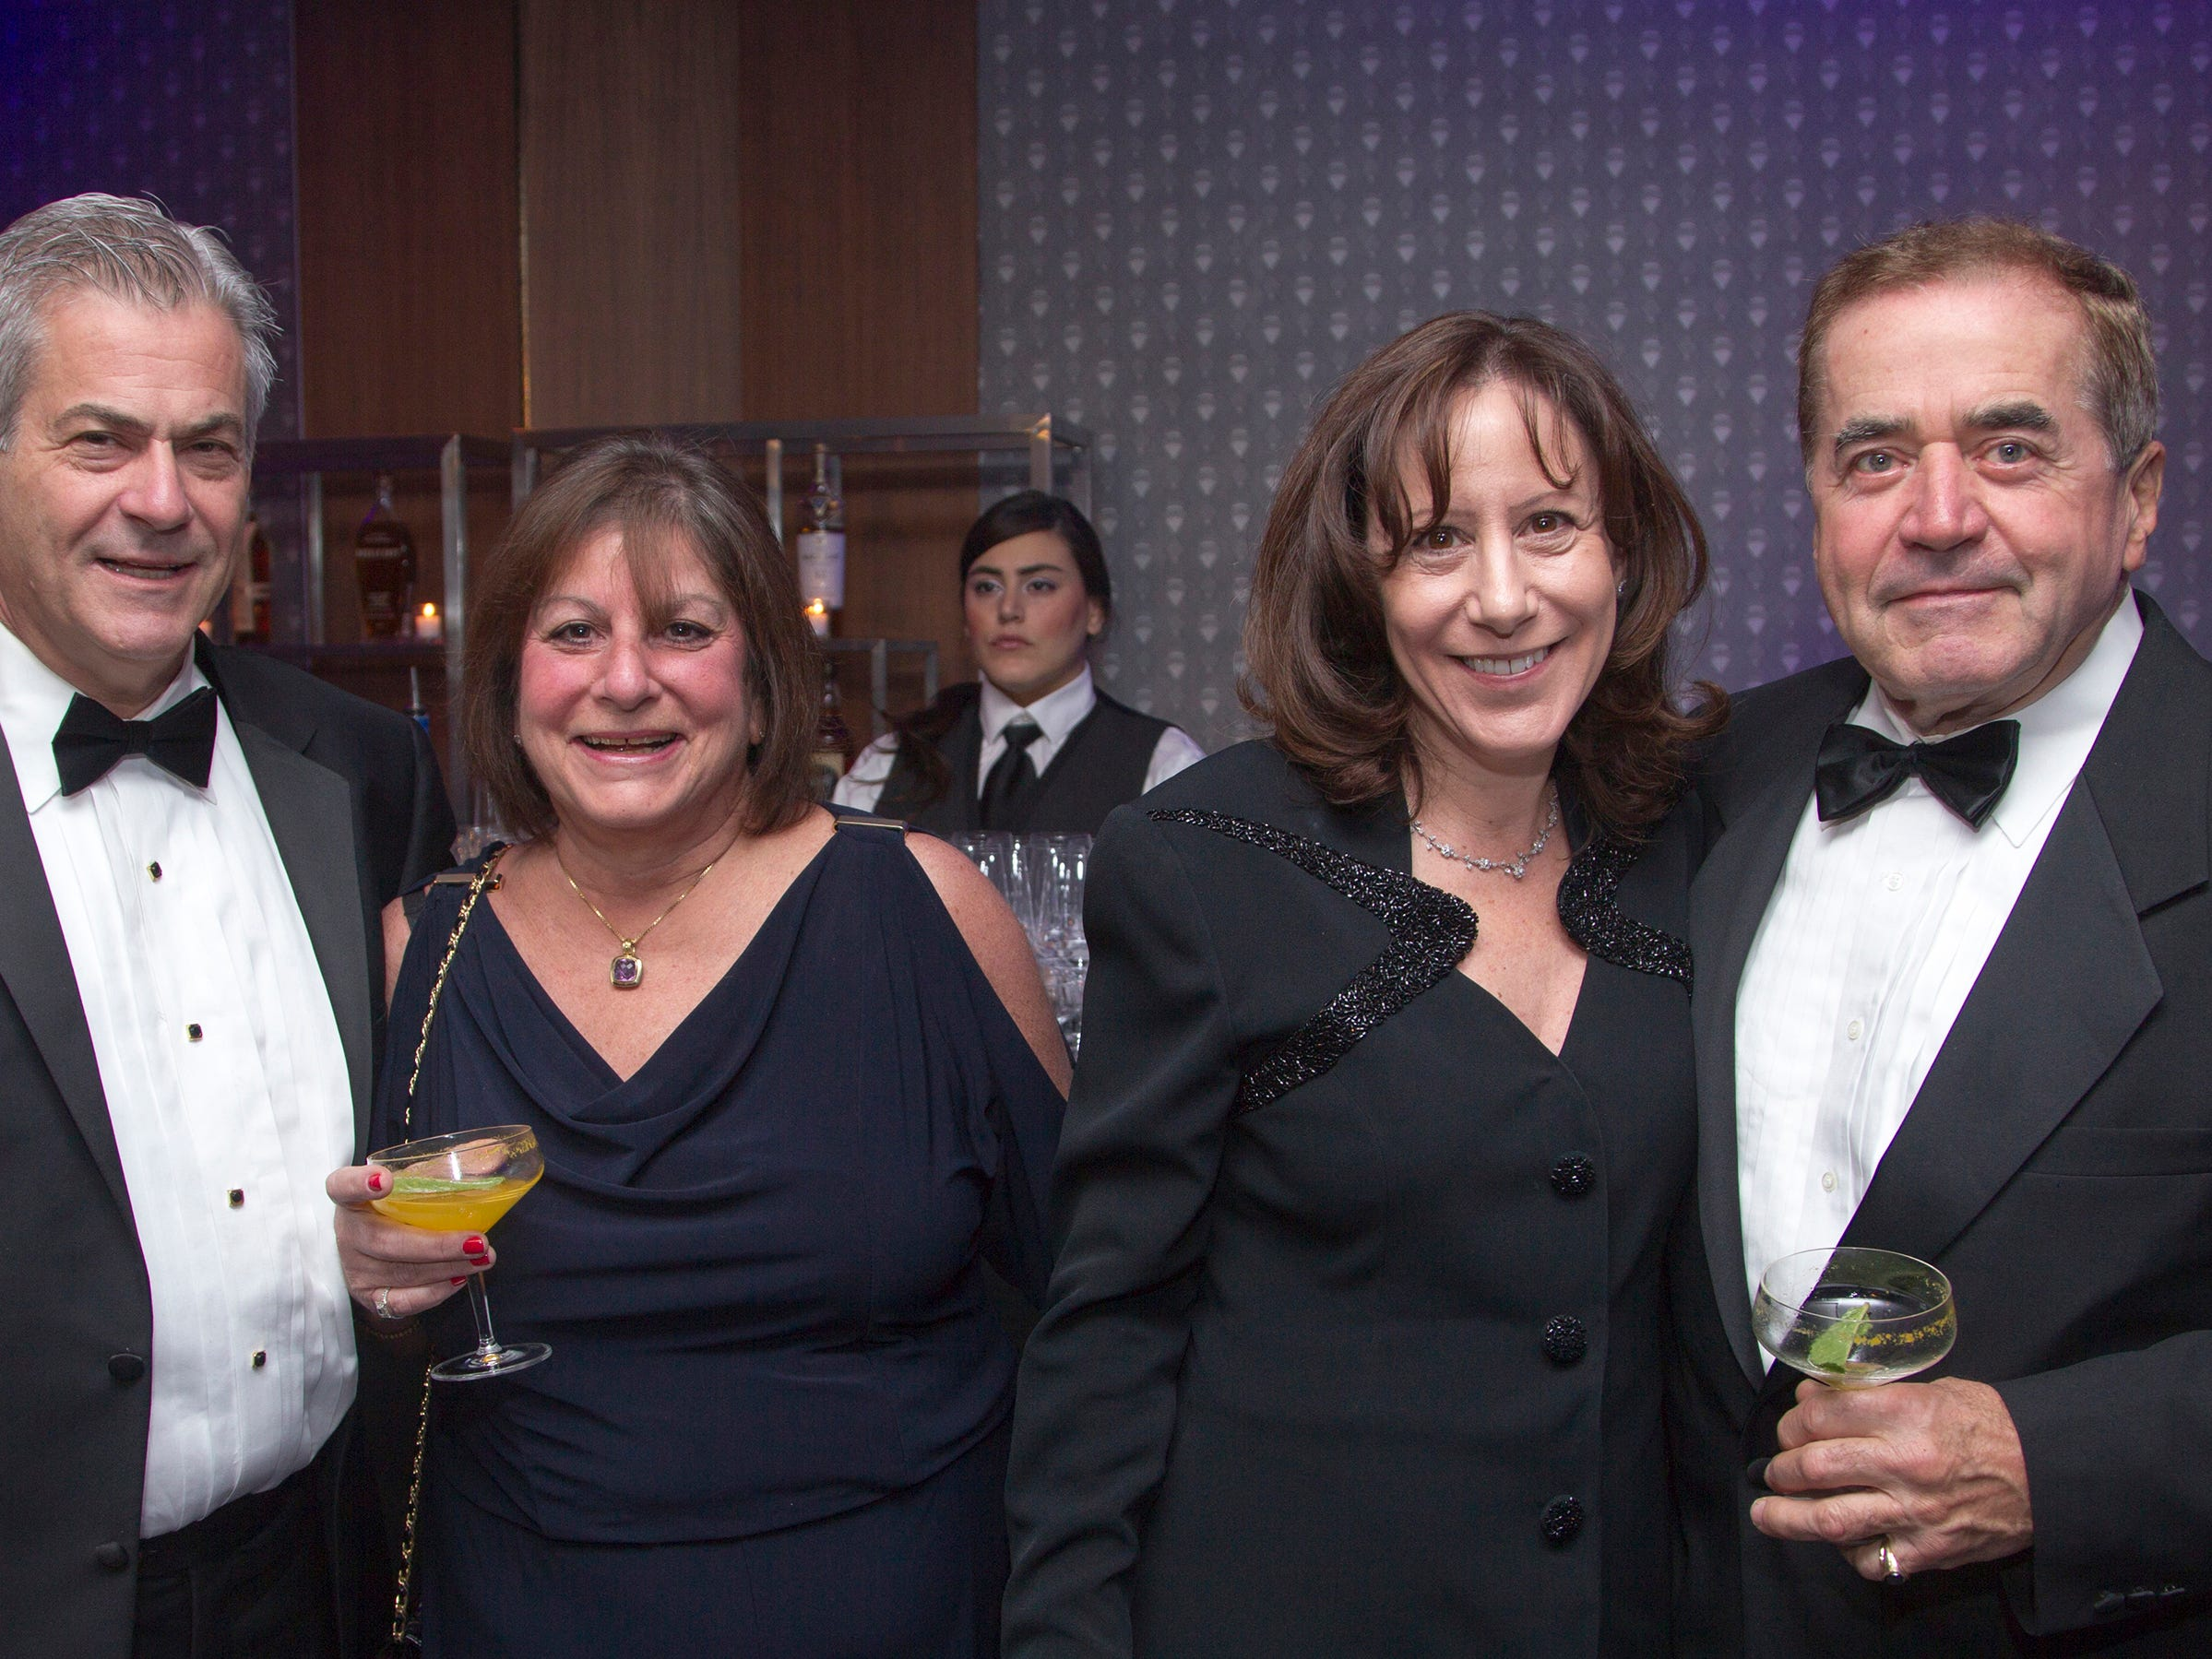 Jeff Chinman, Barbara Dooly, Linda Chinman, Daniel Dooly. Holy Name Medical Center held its 2018 Founders Ball in NYC at Ziegfeld Ballroom. 11/17/2018